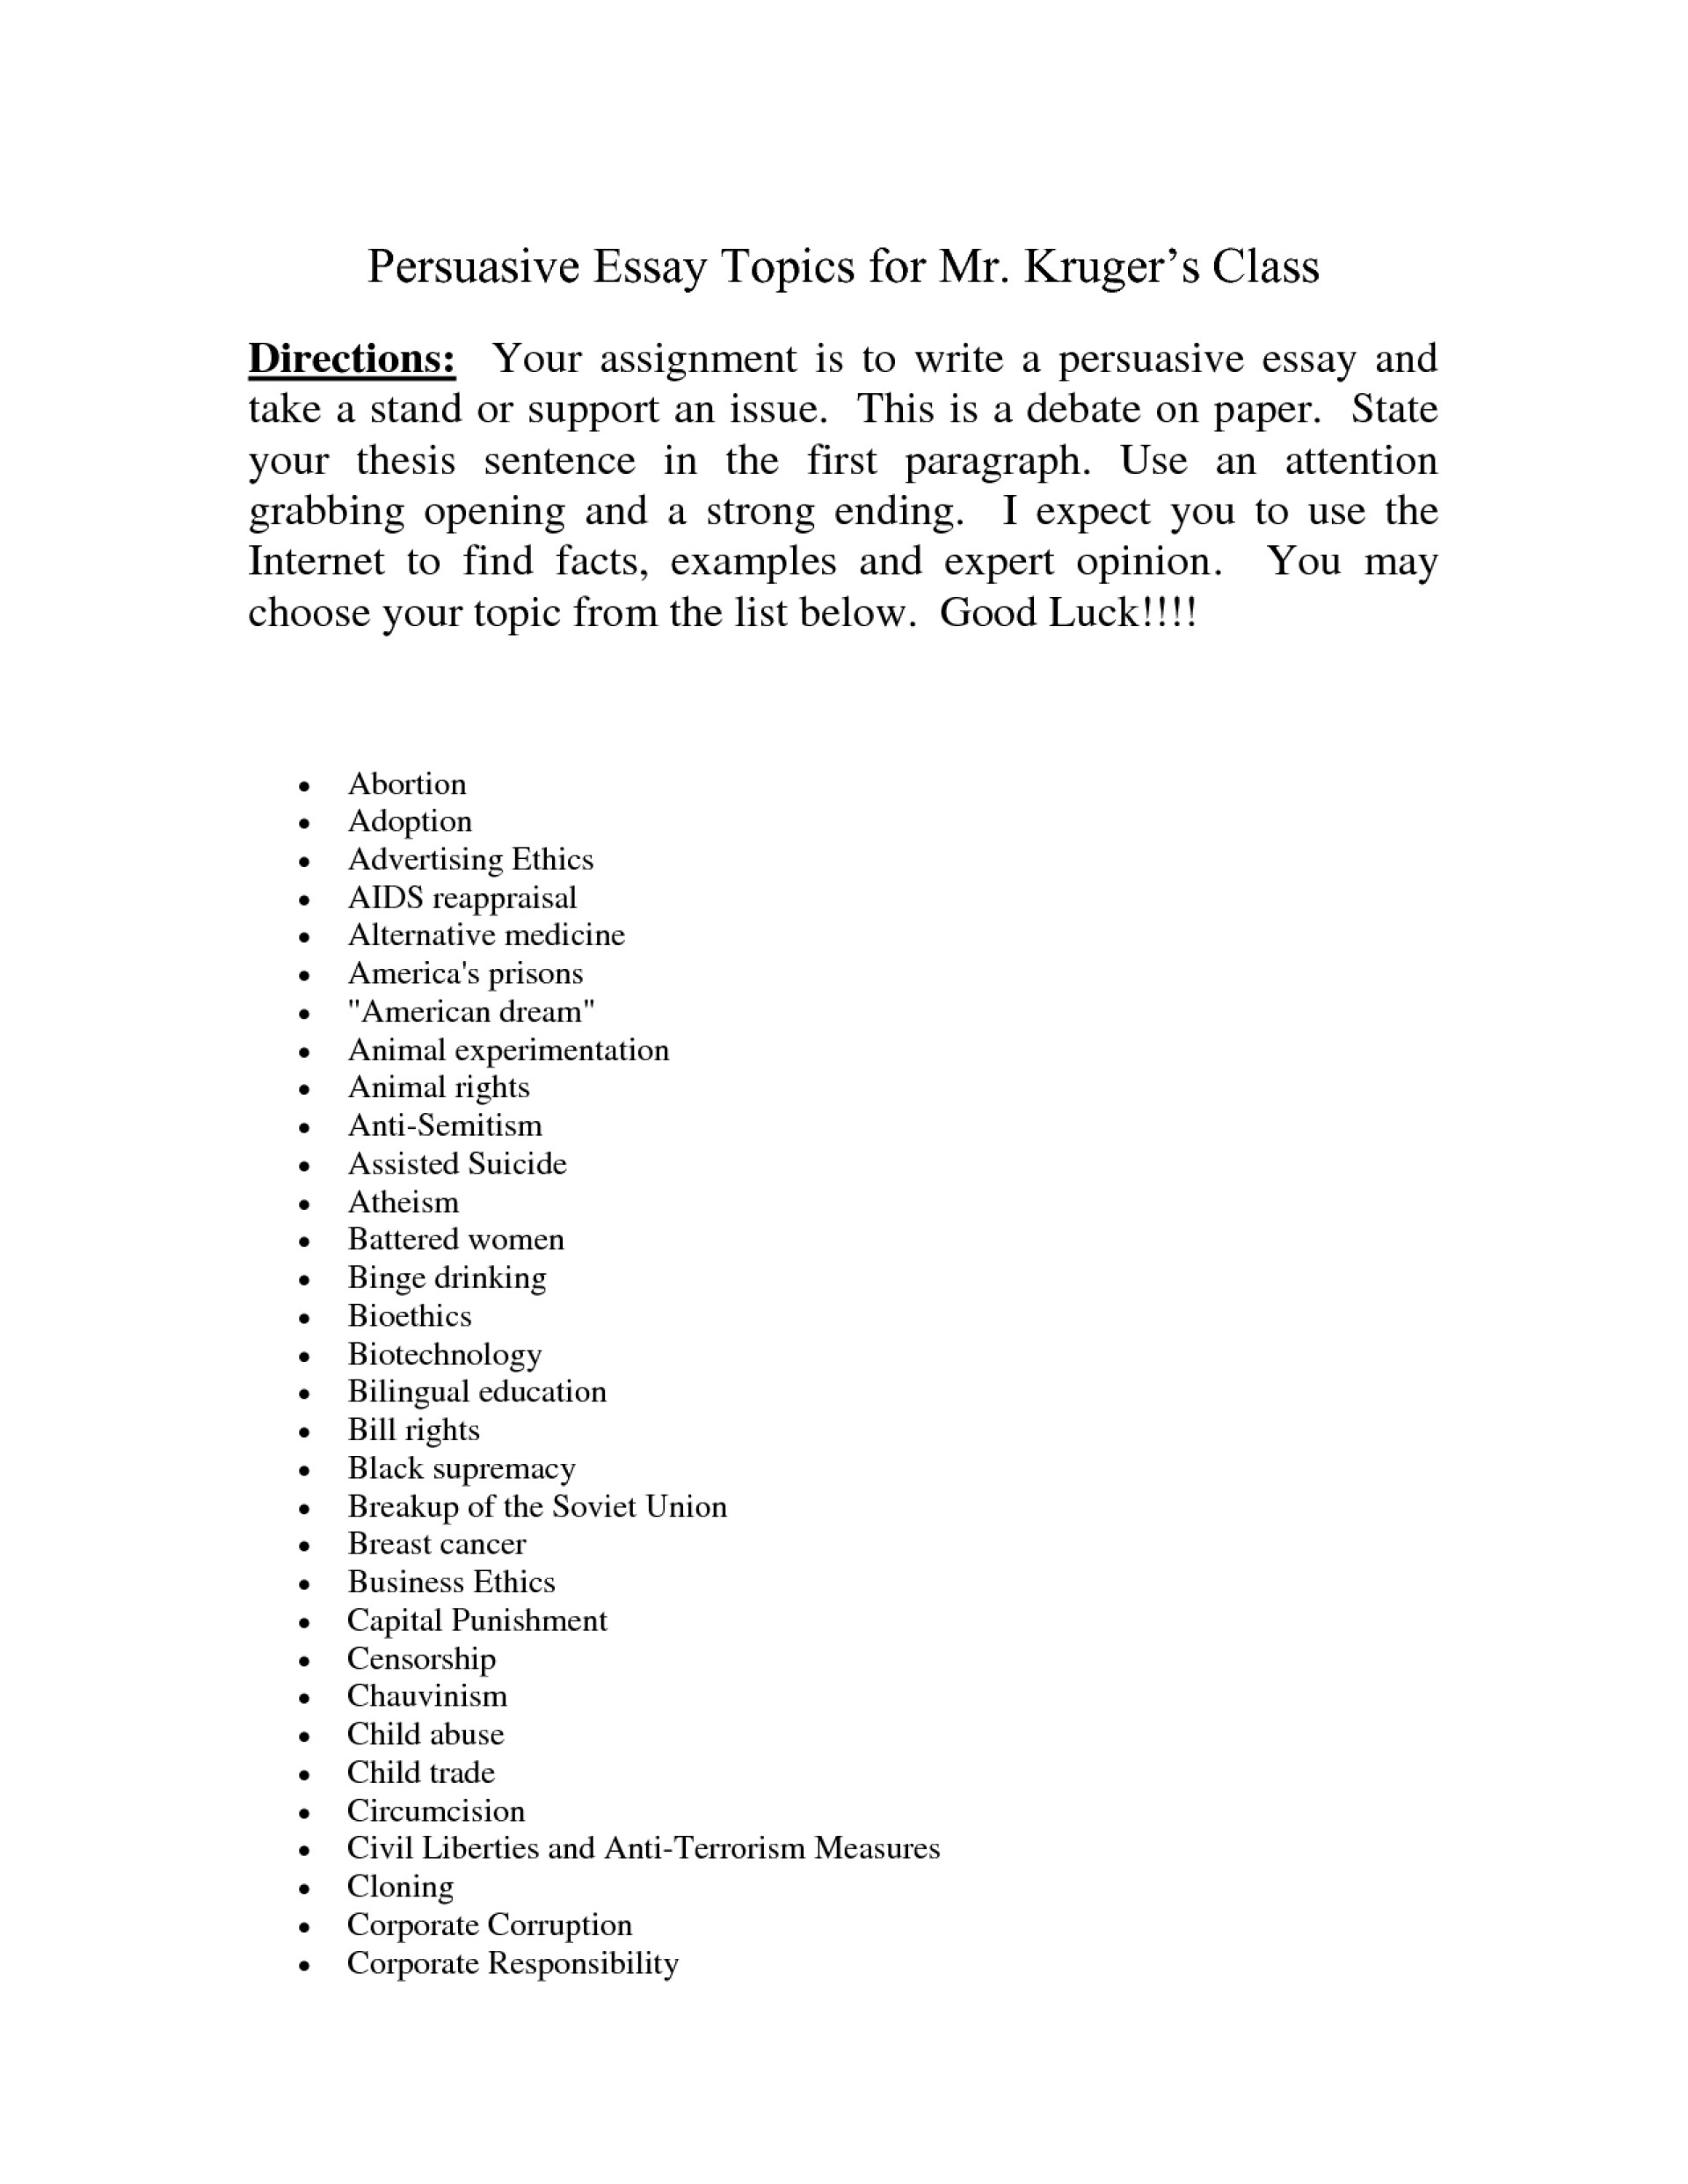 002 College Essays Application Persuasive List Of Essay Topics L Stupendous For High School Students In Hindi 1920